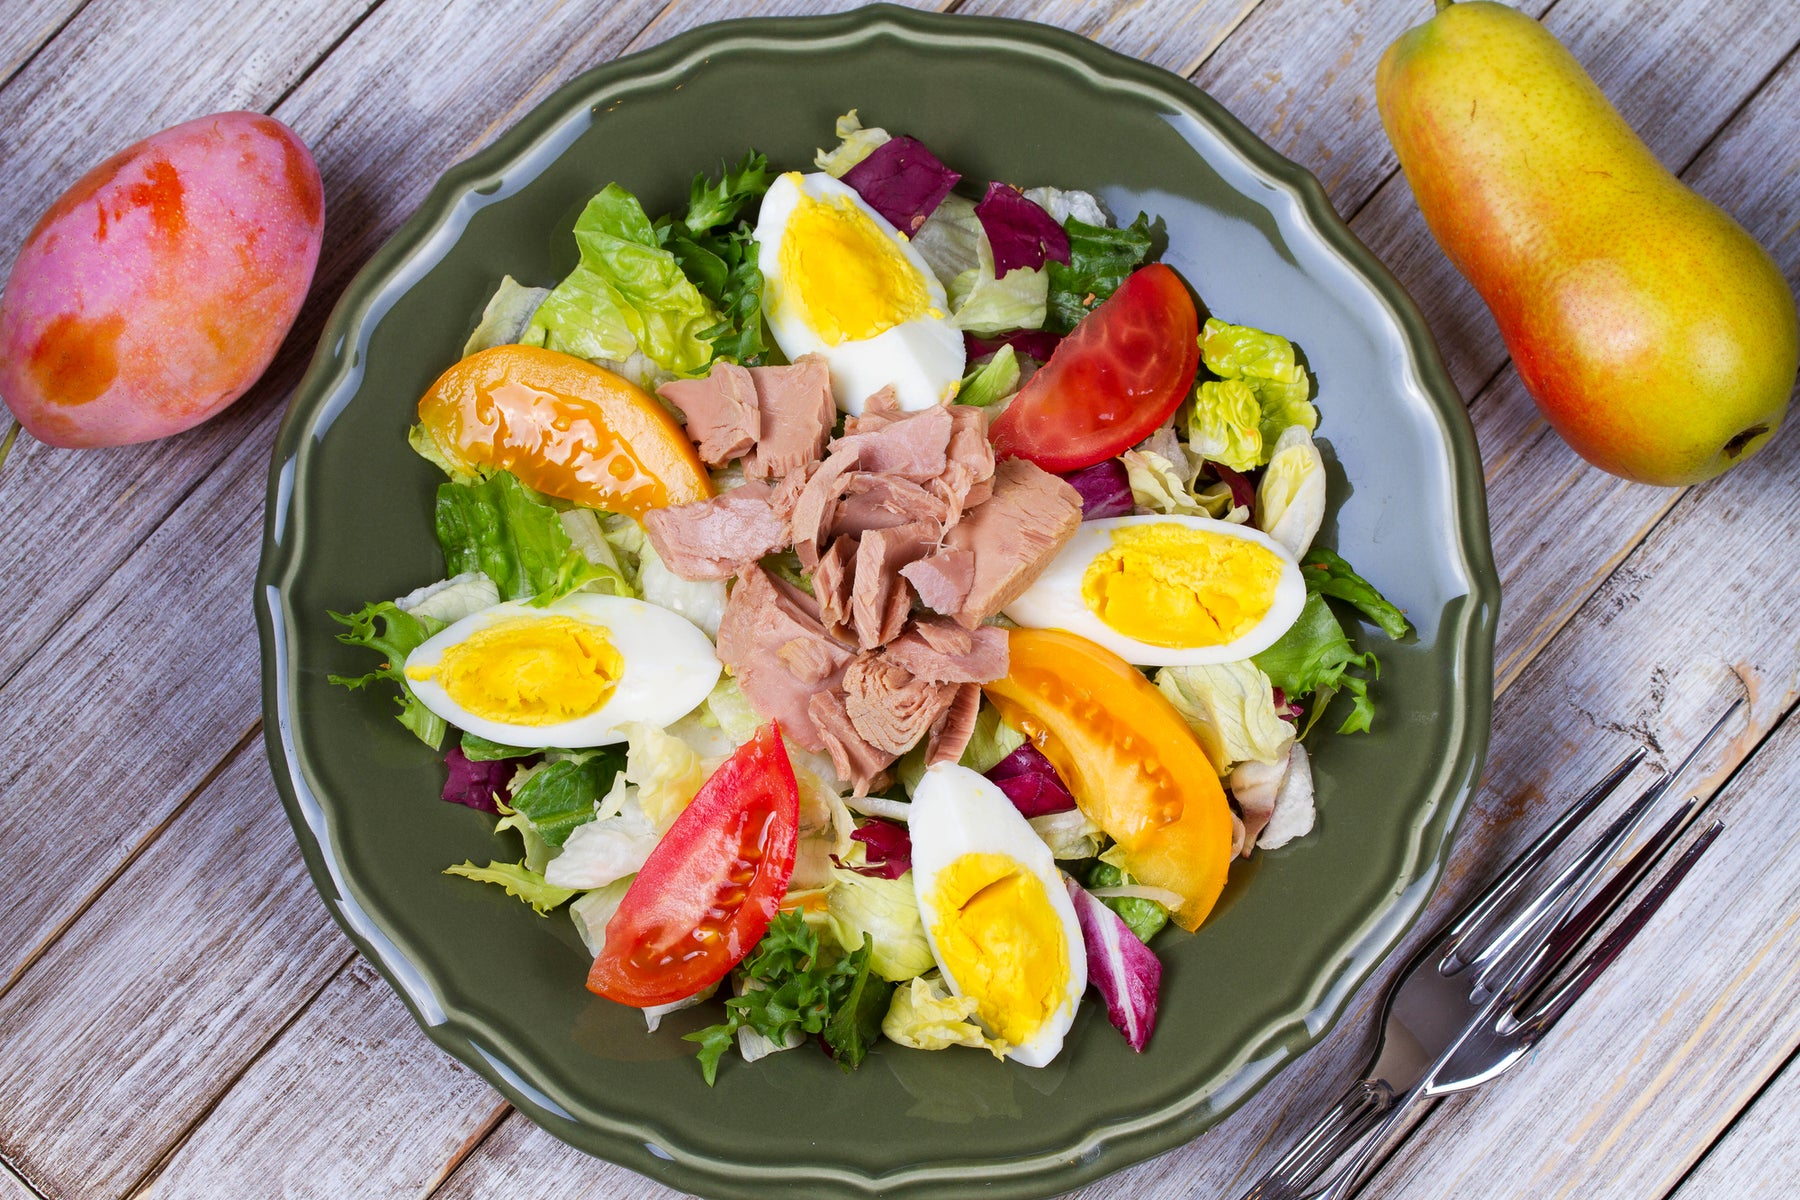 Keto Salad with Tuna and Eggs